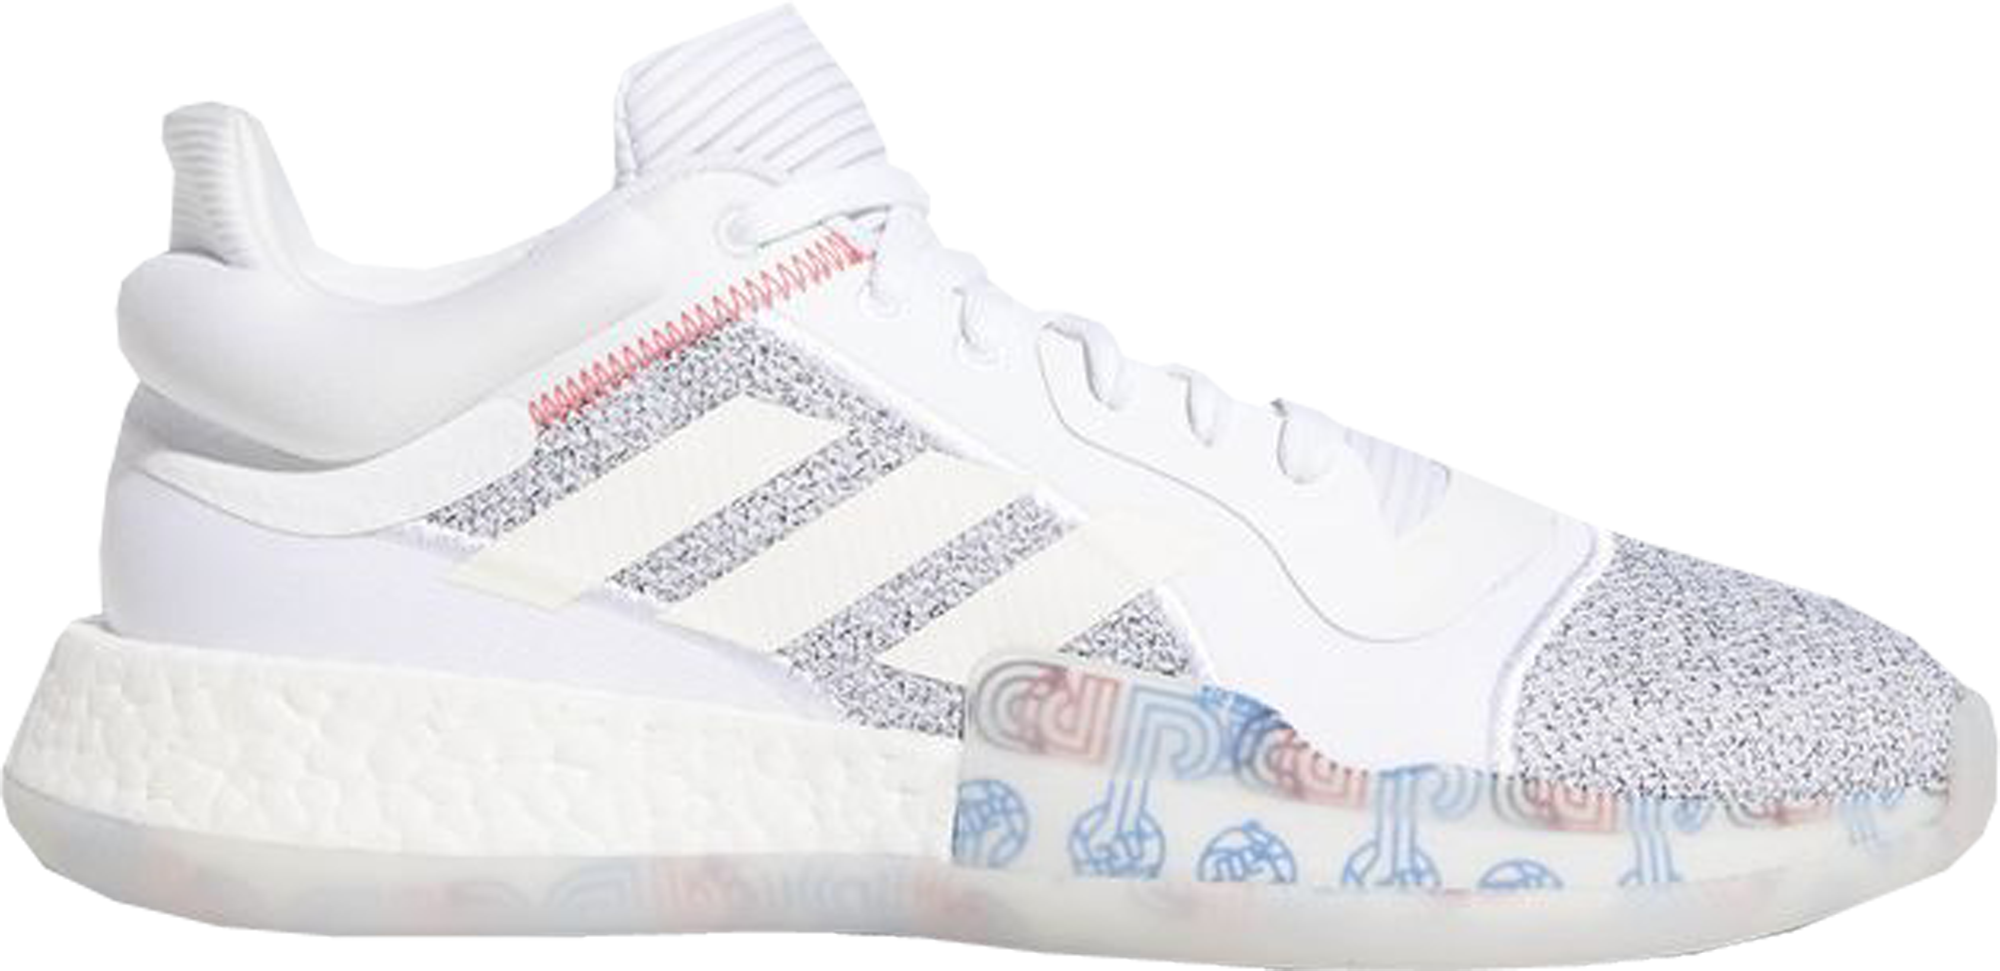 adidas Marquee Boost Low Footwear White